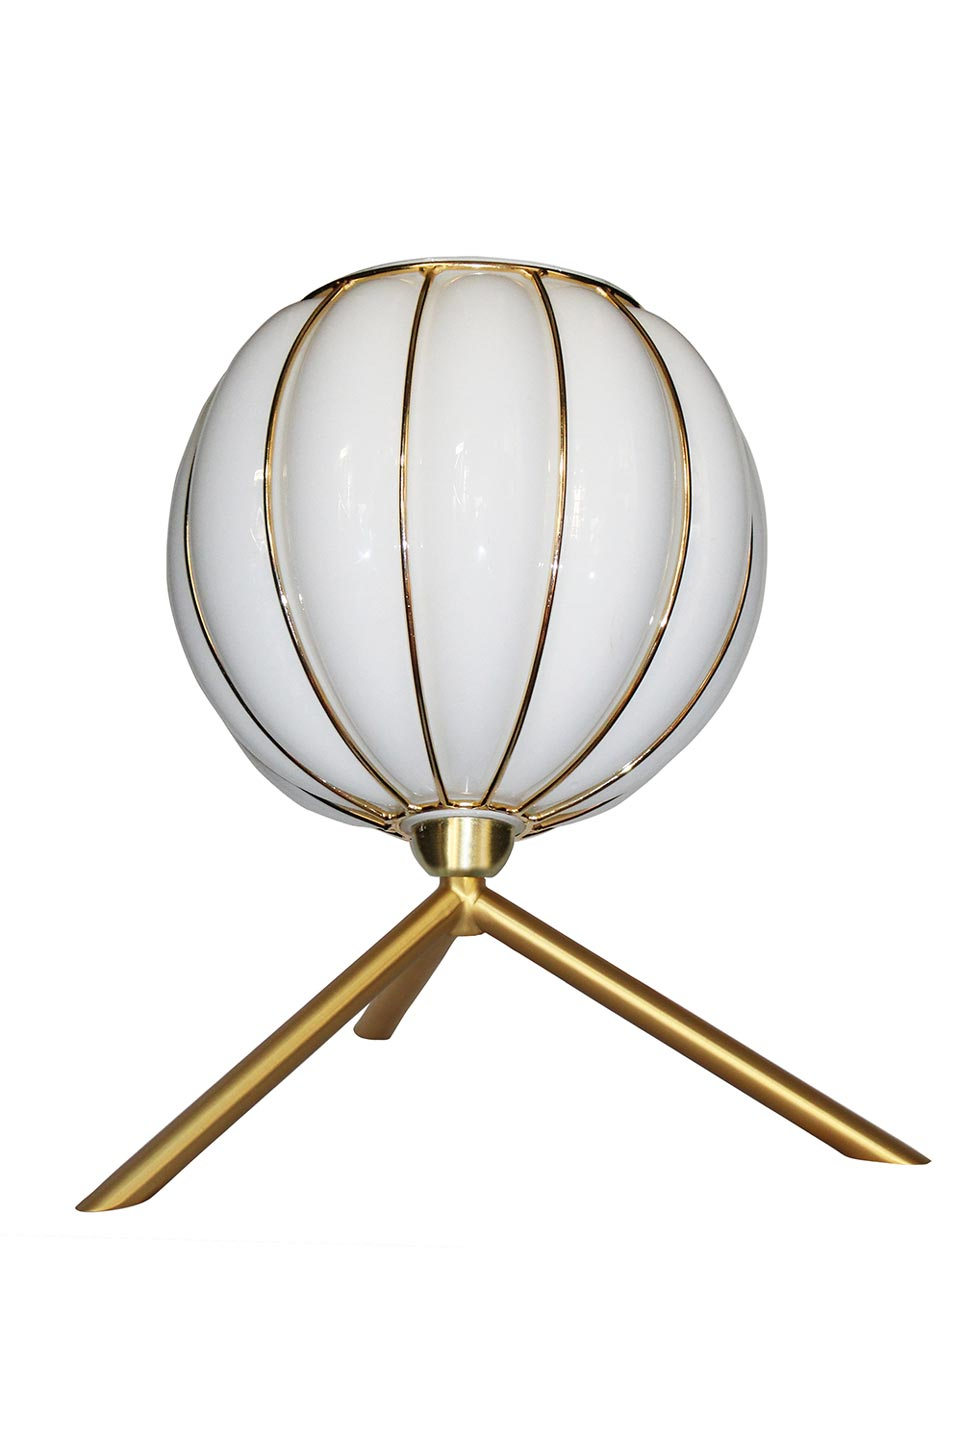 Casamance glass ball and brushed brass table lamp. Concept Verre.